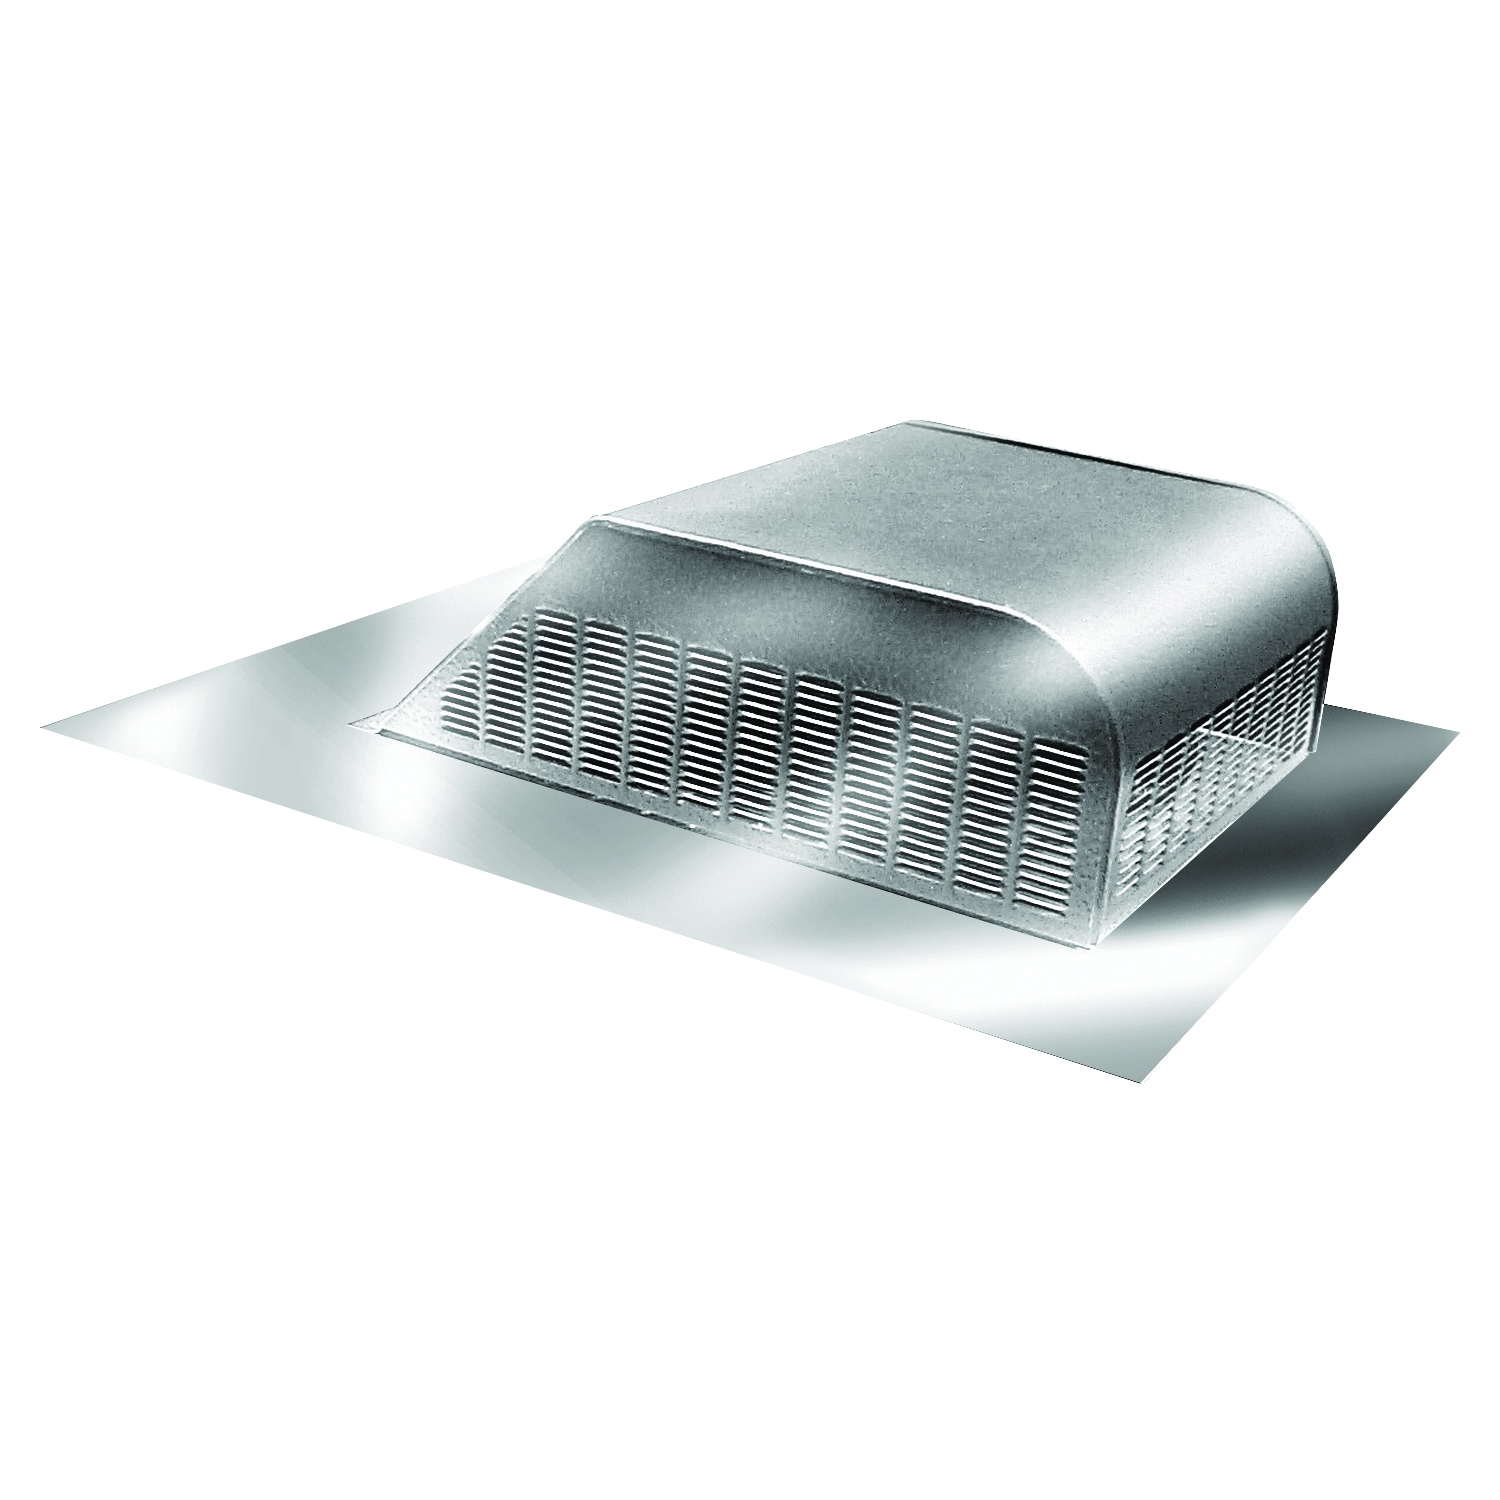 Picture of Master Flow SSB960A Roof Louver, 18 in L, 20-1/2 in W, Aluminum, Mill